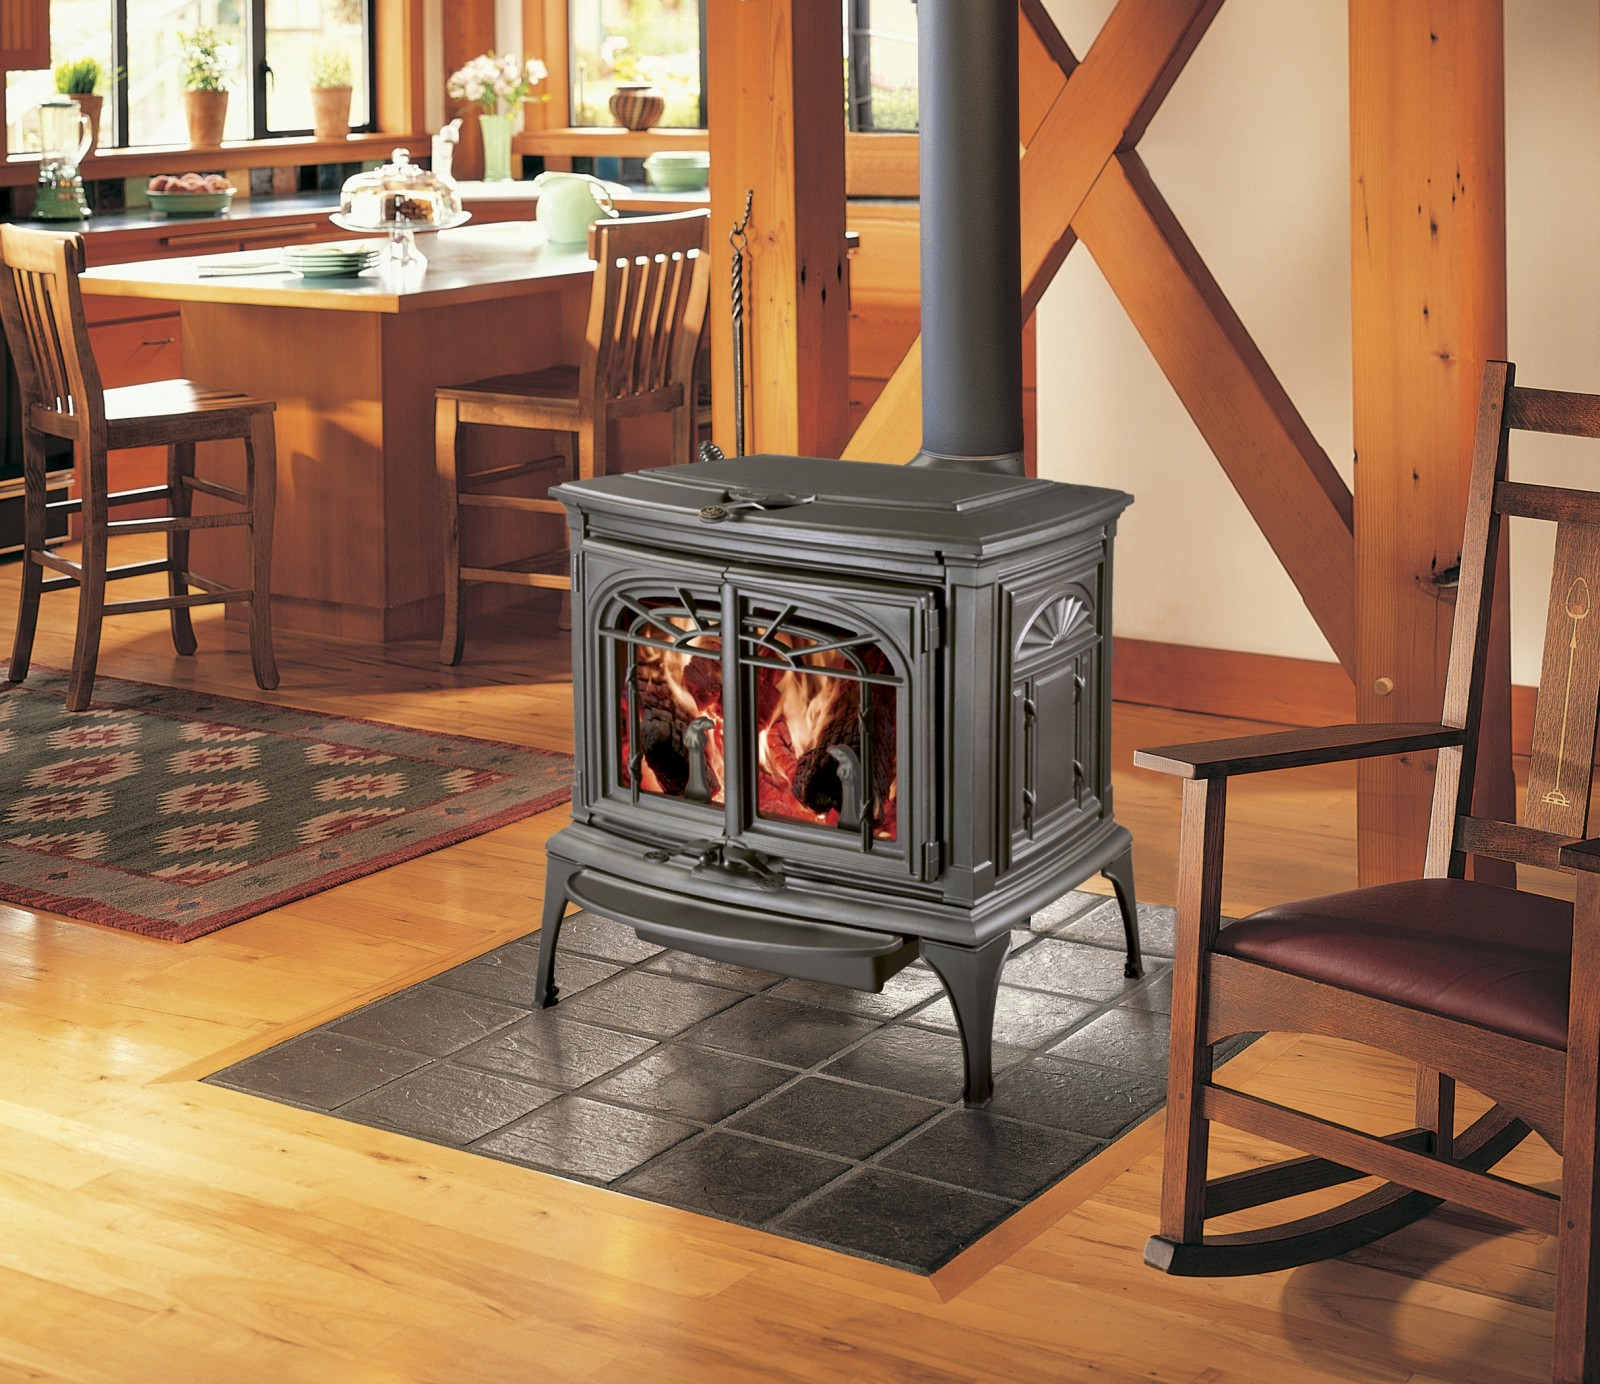 Fireplace Faq S Archives Hot Tubs Fireplaces Patio Furniture Heat N Sweep Okemos Michigan